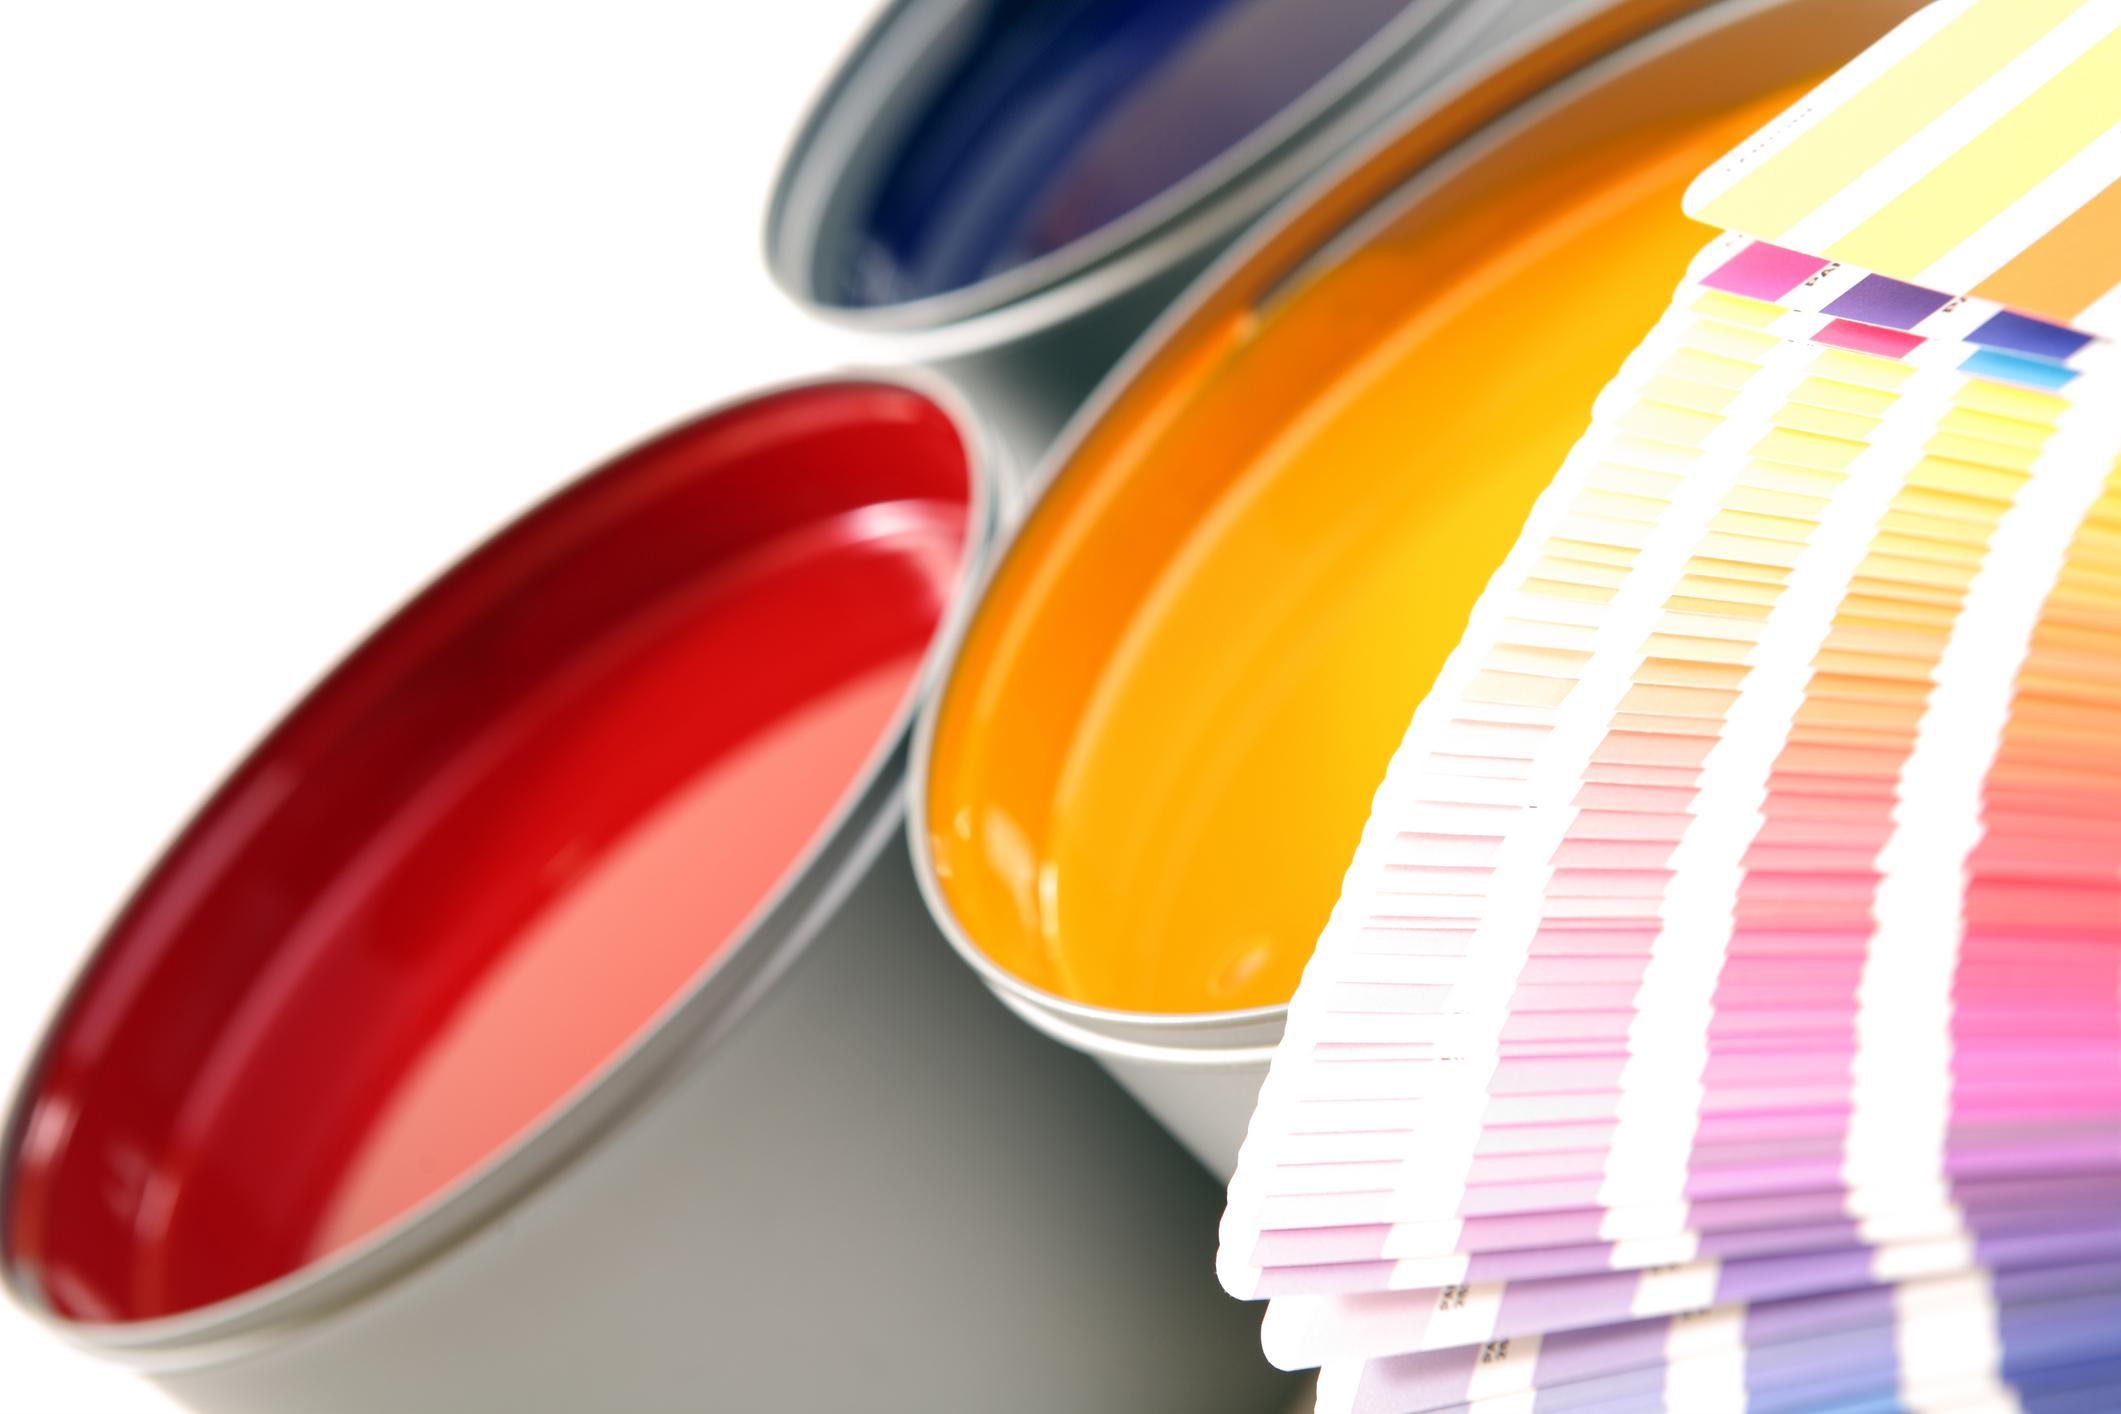 printing is better for meeting strict deadlines. This type of printing ...: www.greenprinteronline.com/blog/category/printing-industry